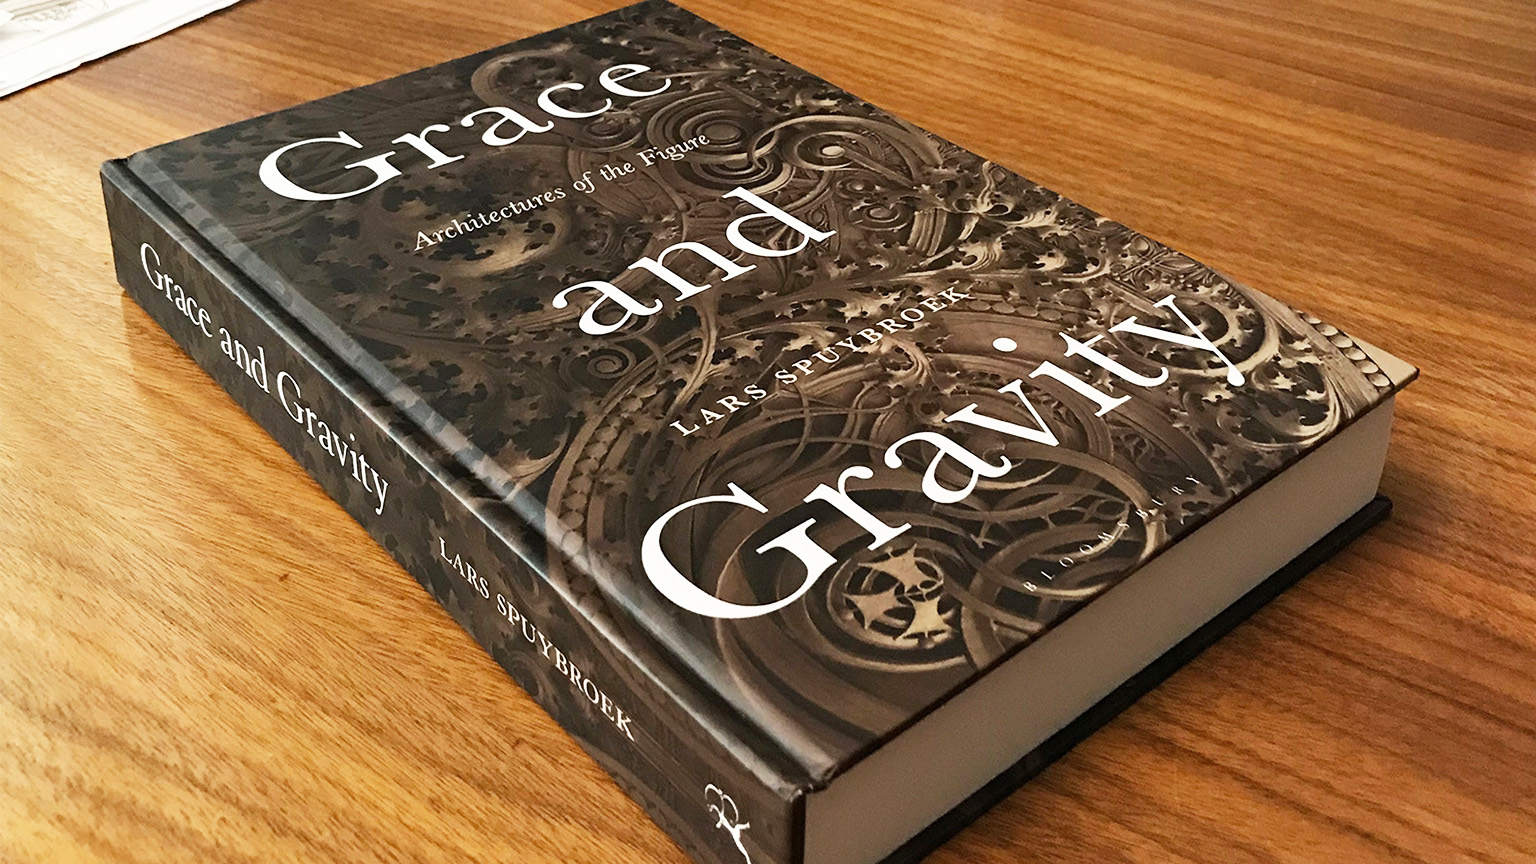 A copy of Grace and Gravity sitting on a desk.